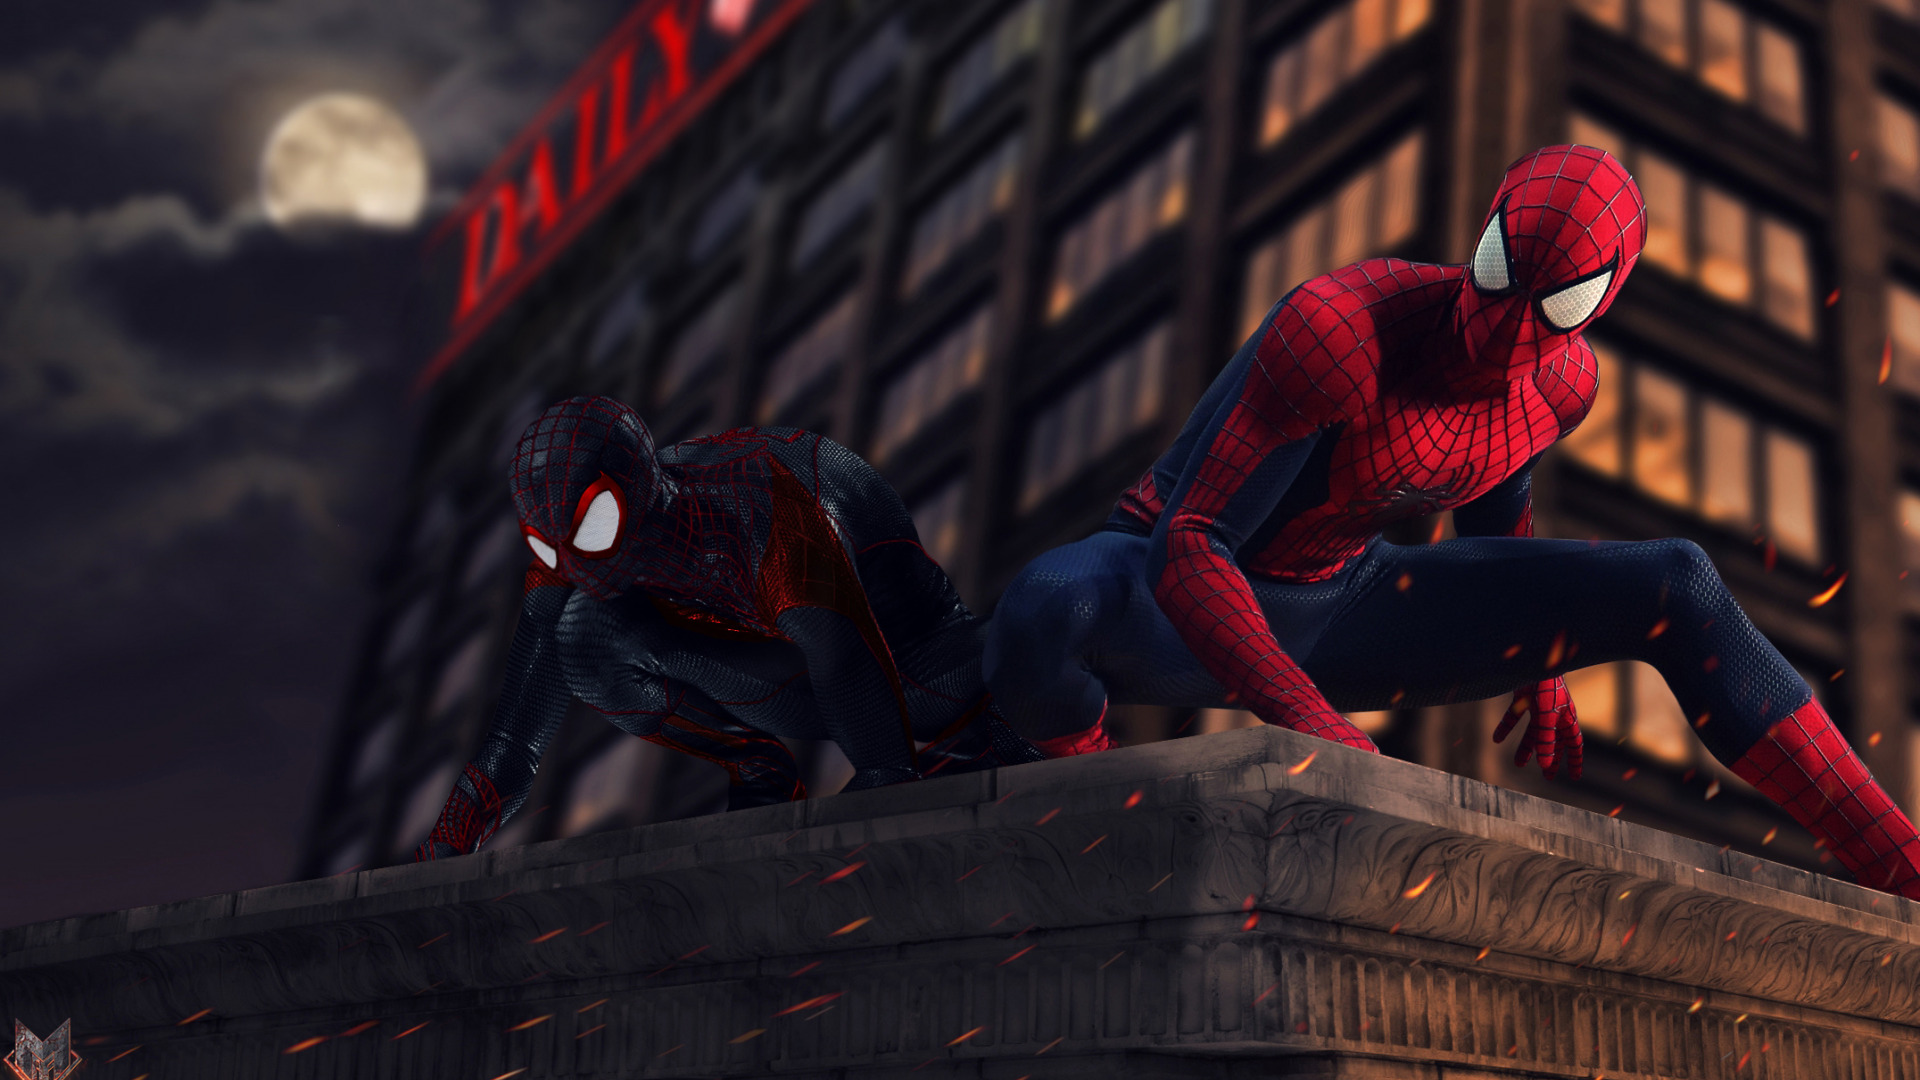 Download Wallpaper Marvel Spider Man Peter Parker Miles Morales